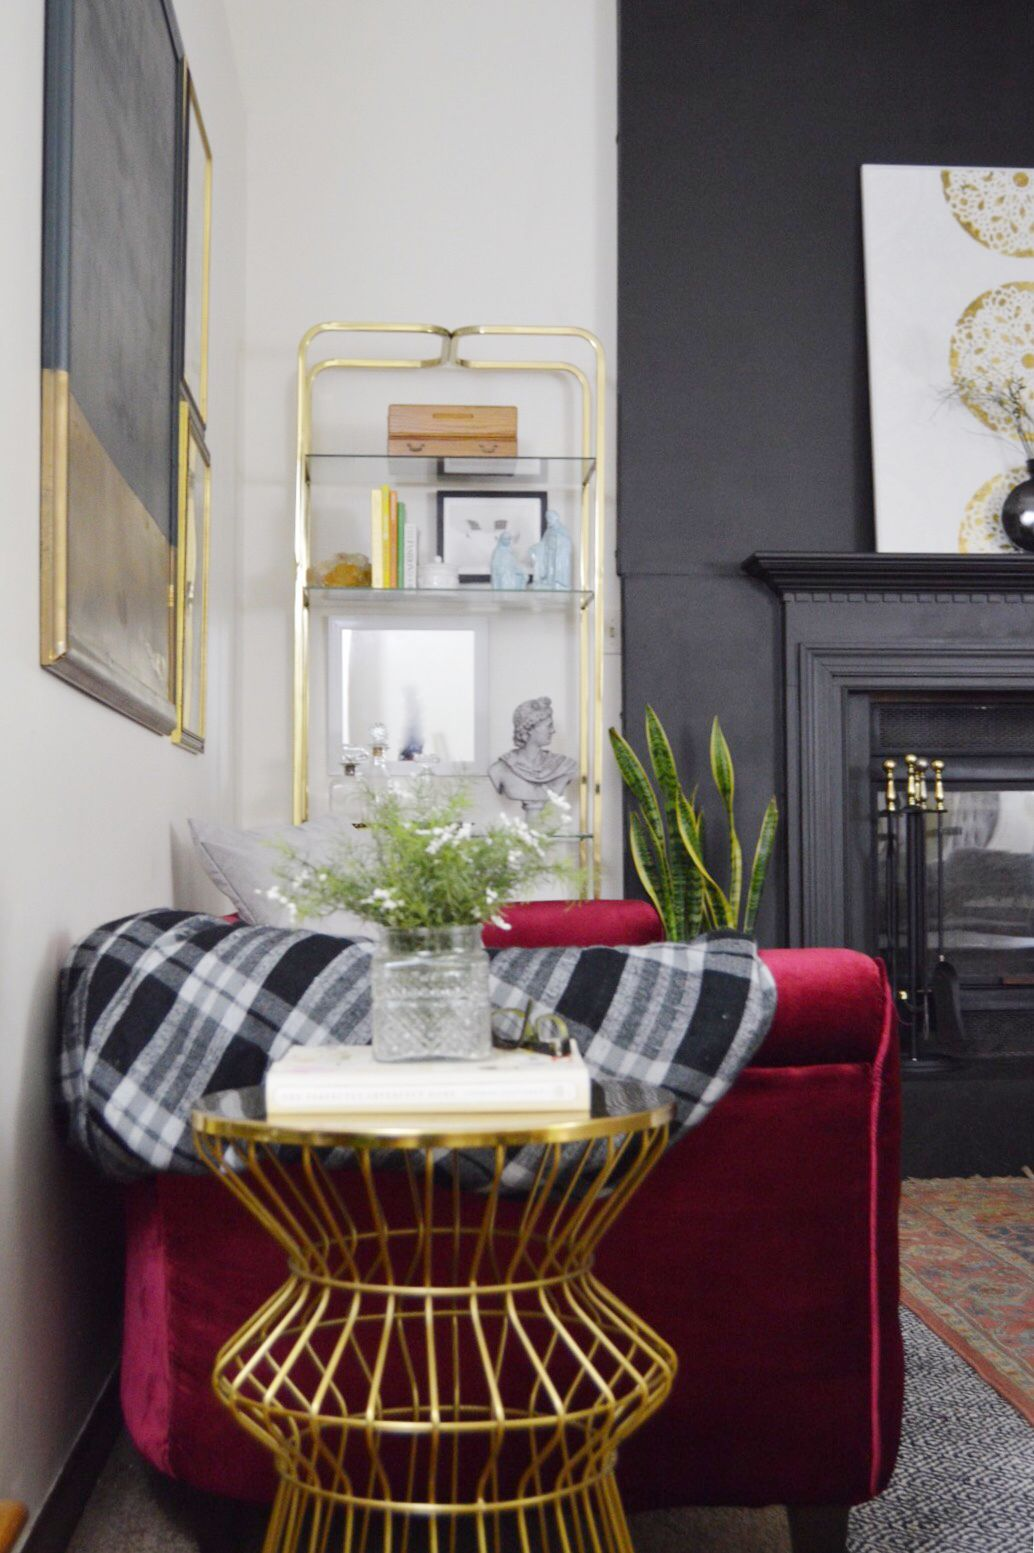 one room challenge mid century modern eclectic vintage bohemian interior design